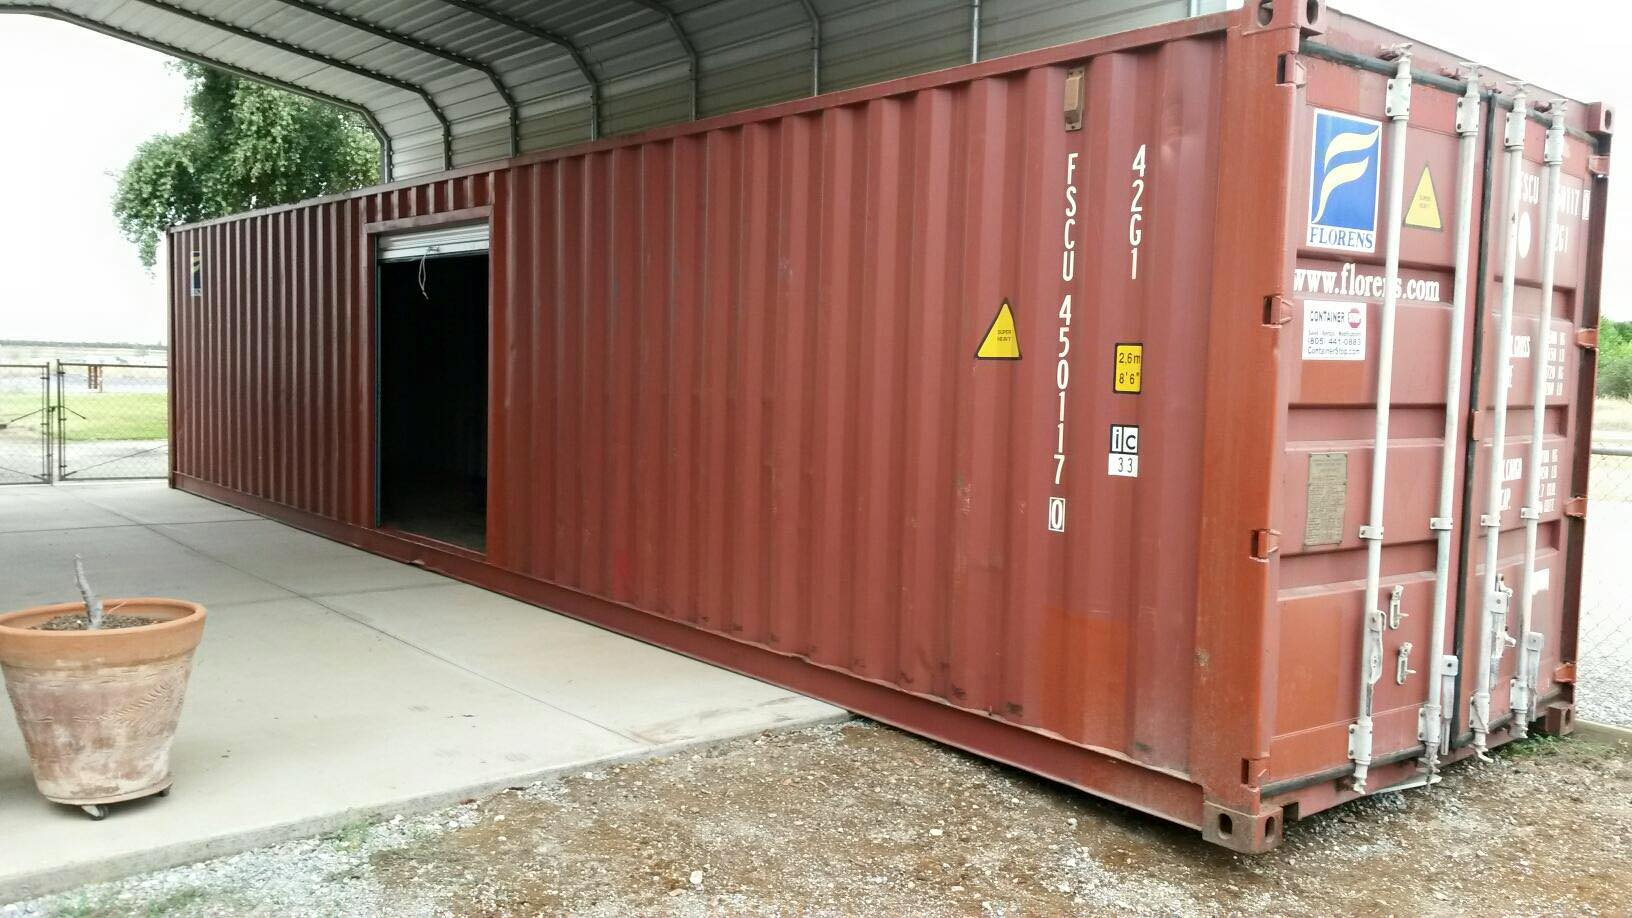 Merveilleux San Luis Obispo Storage Container Provider, Container Stop, Releases Report  On Tips To Consider When Buying A Storage Container